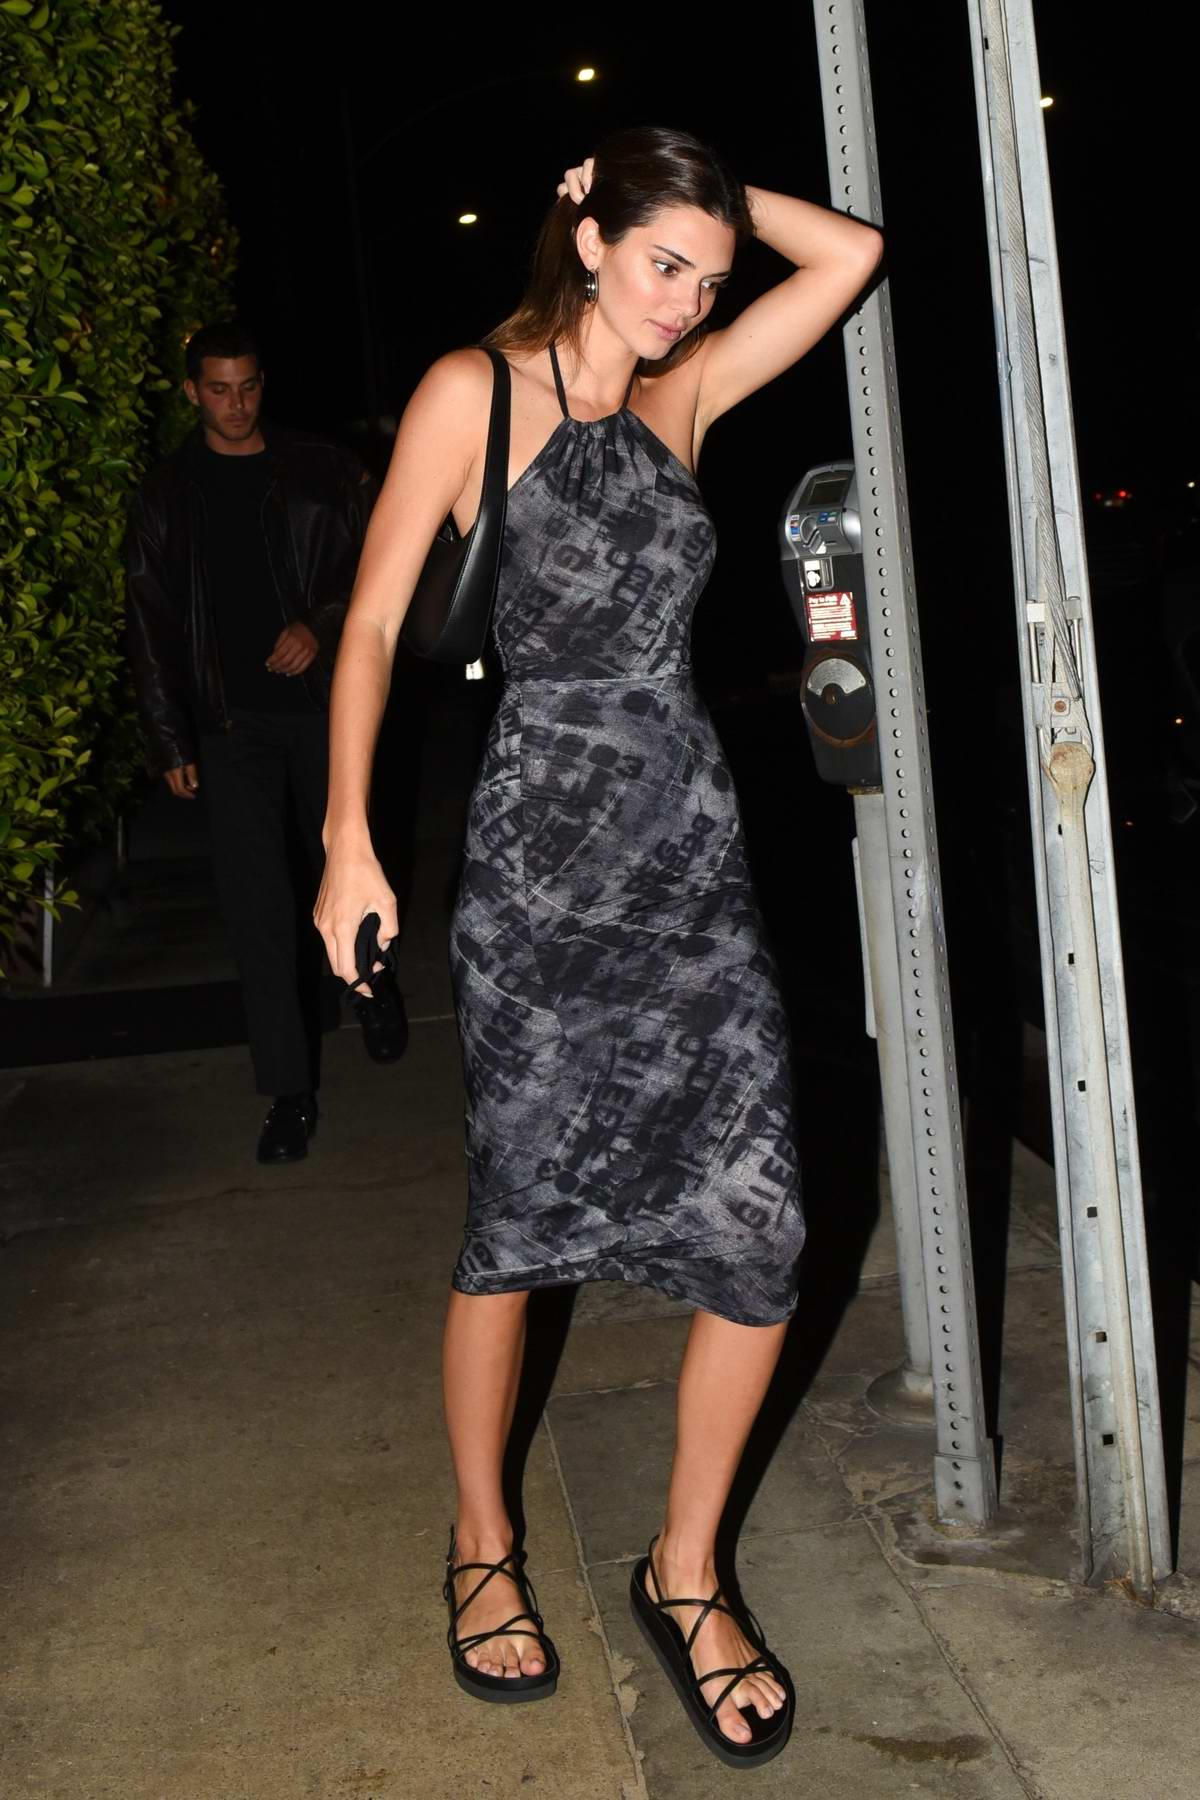 Kendall Jenner looks gorgerous as she steps out for dinner with Fai Khadra at Giorgio Baldi in Santa Monica, California